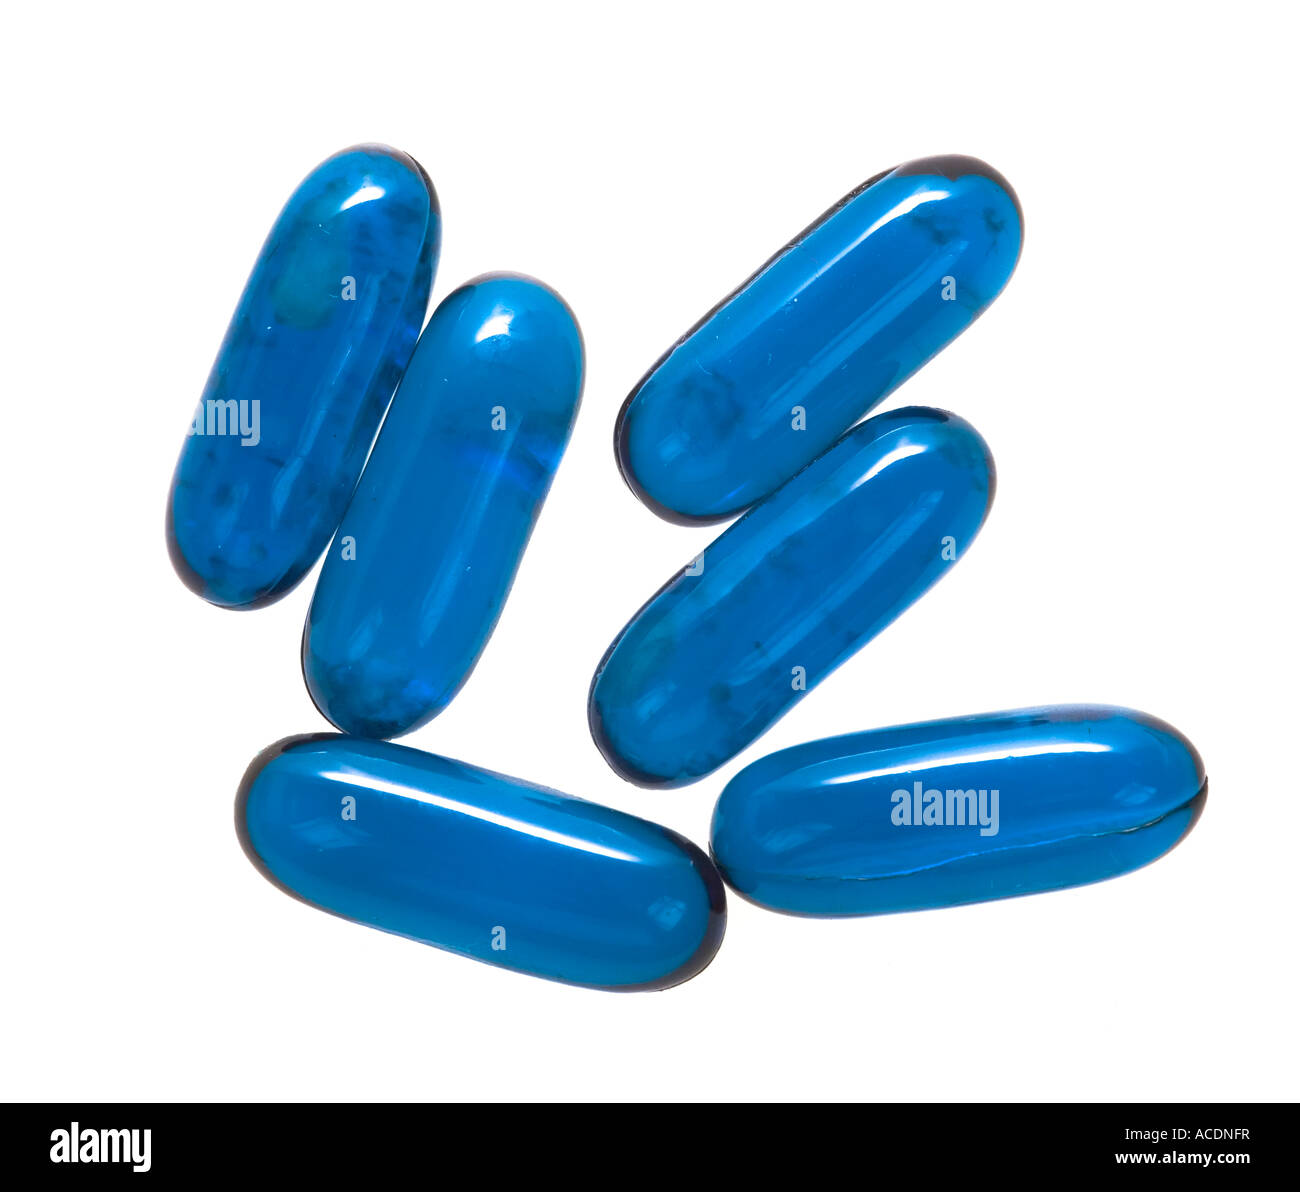 Old outdated flu treatment capsules with dark spots showing how contents are degenerating due for disposal UK - Stock Image